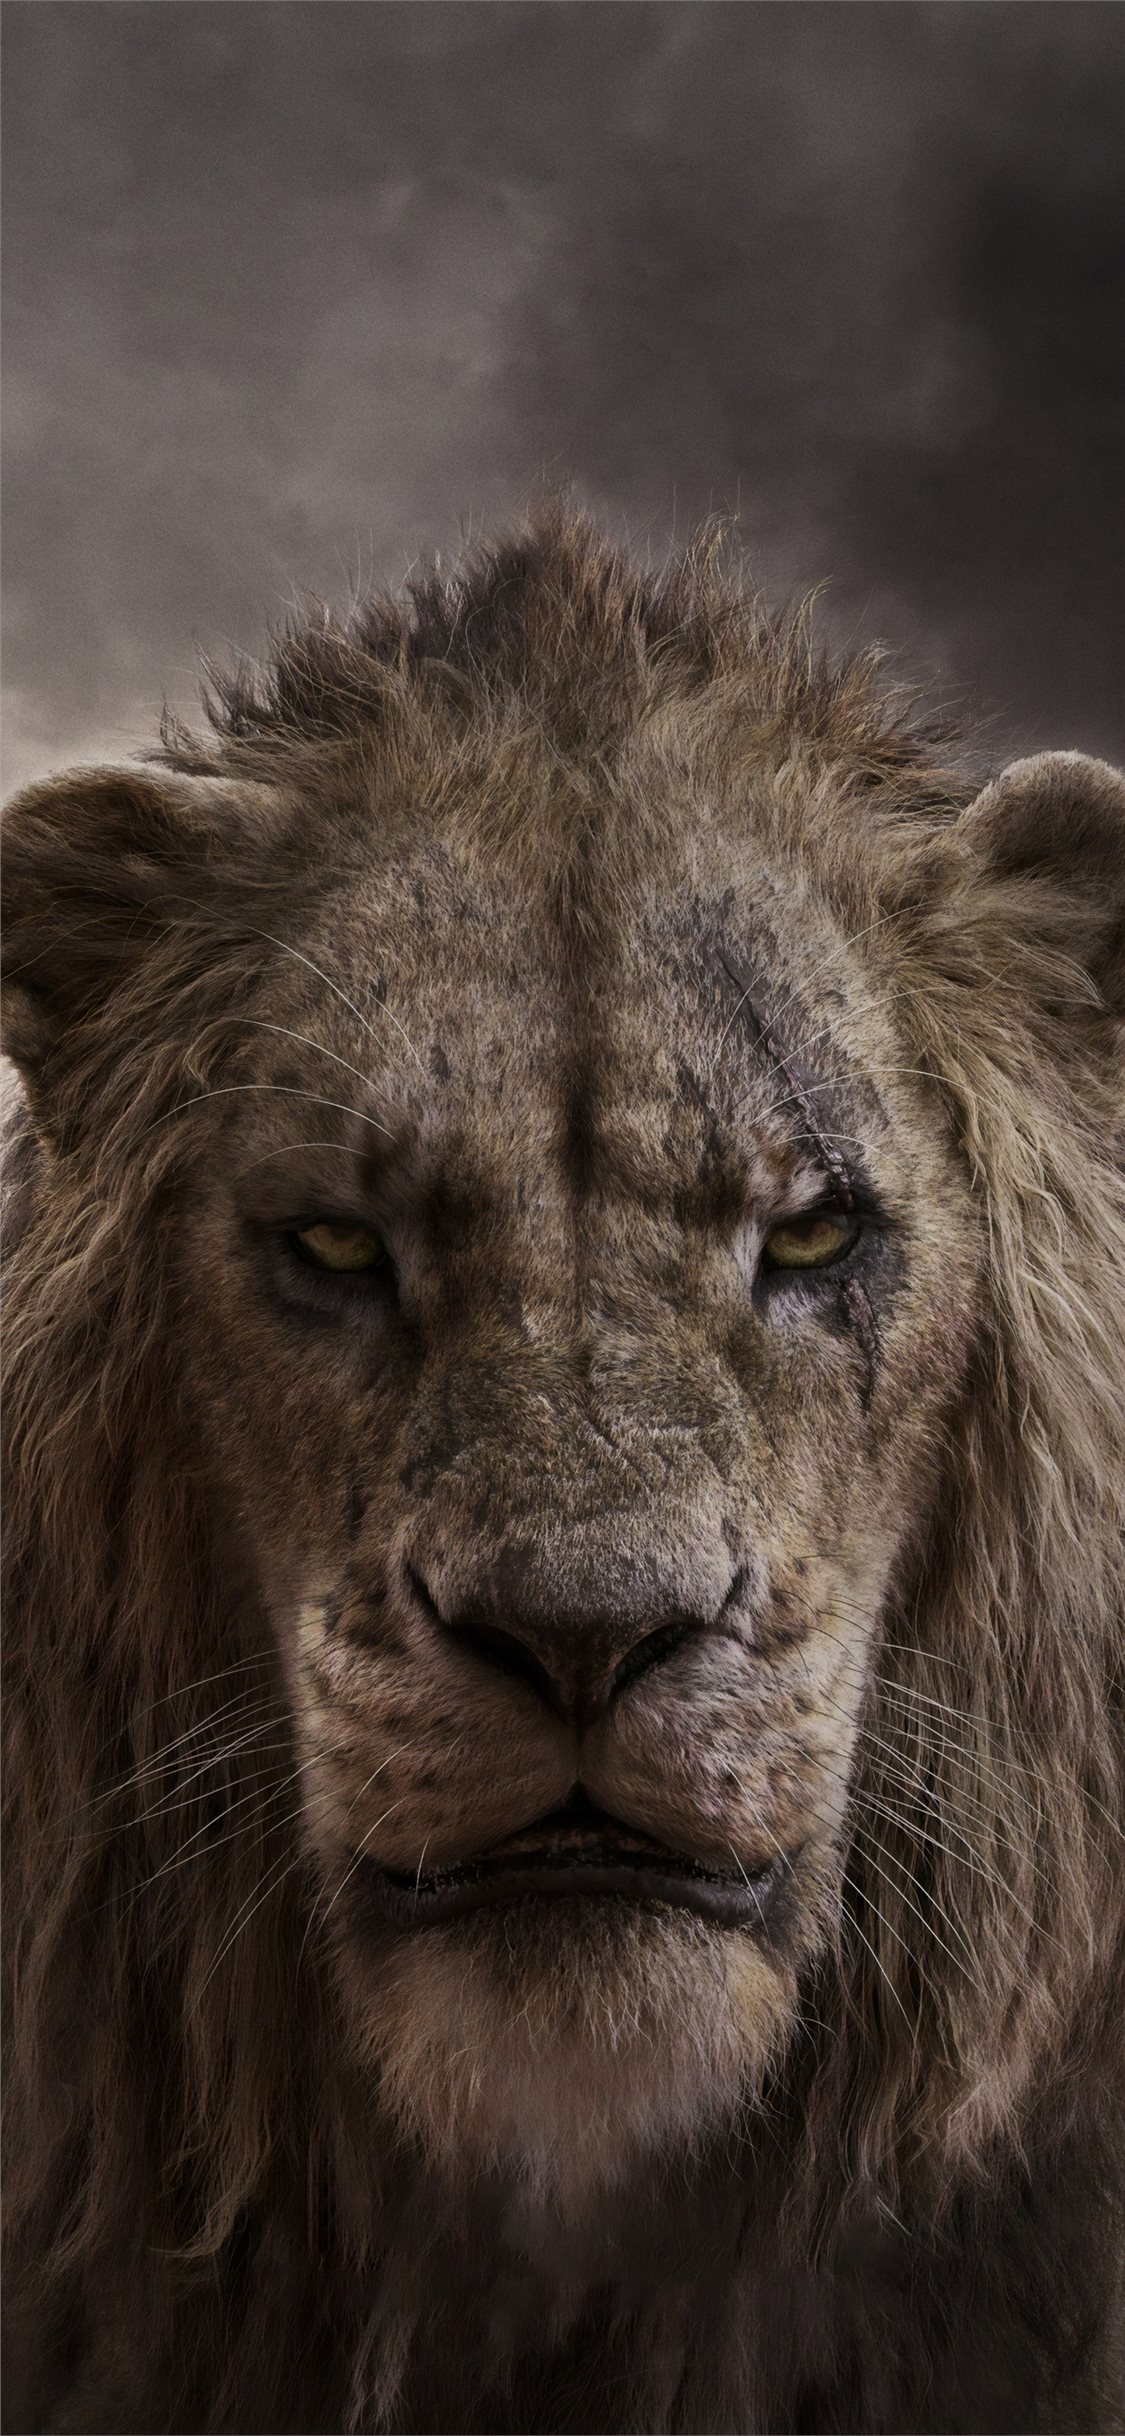 Chiwetel Ejiofor As Scar In The Lion King 2019 4k Iphone X